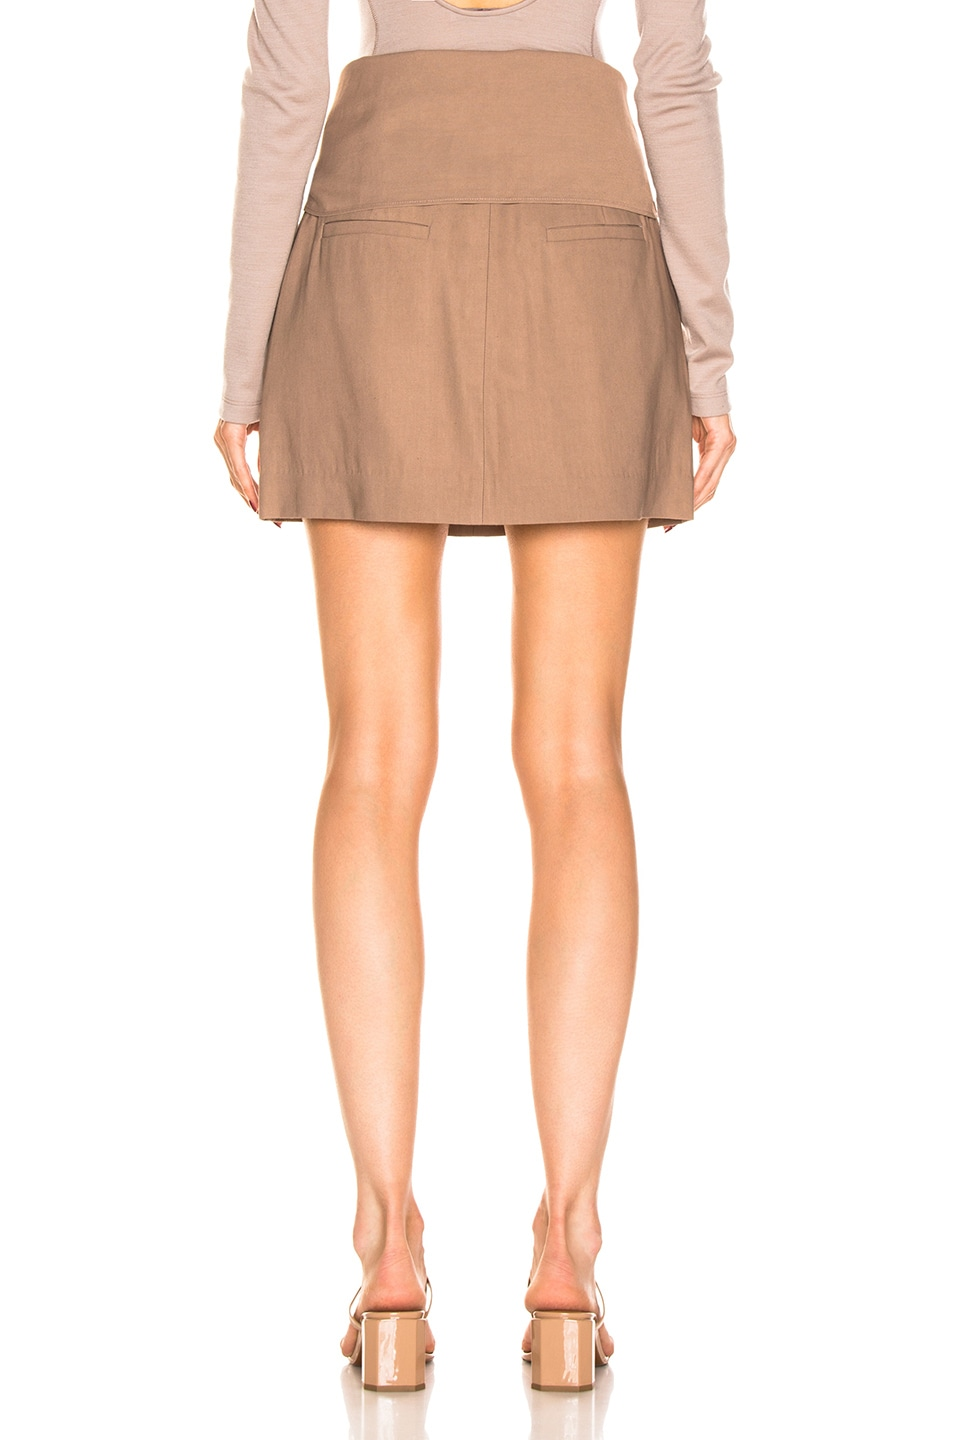 Image 4 of Tibi Linen Suiting Skirt with Detachable Top in Sable Brown